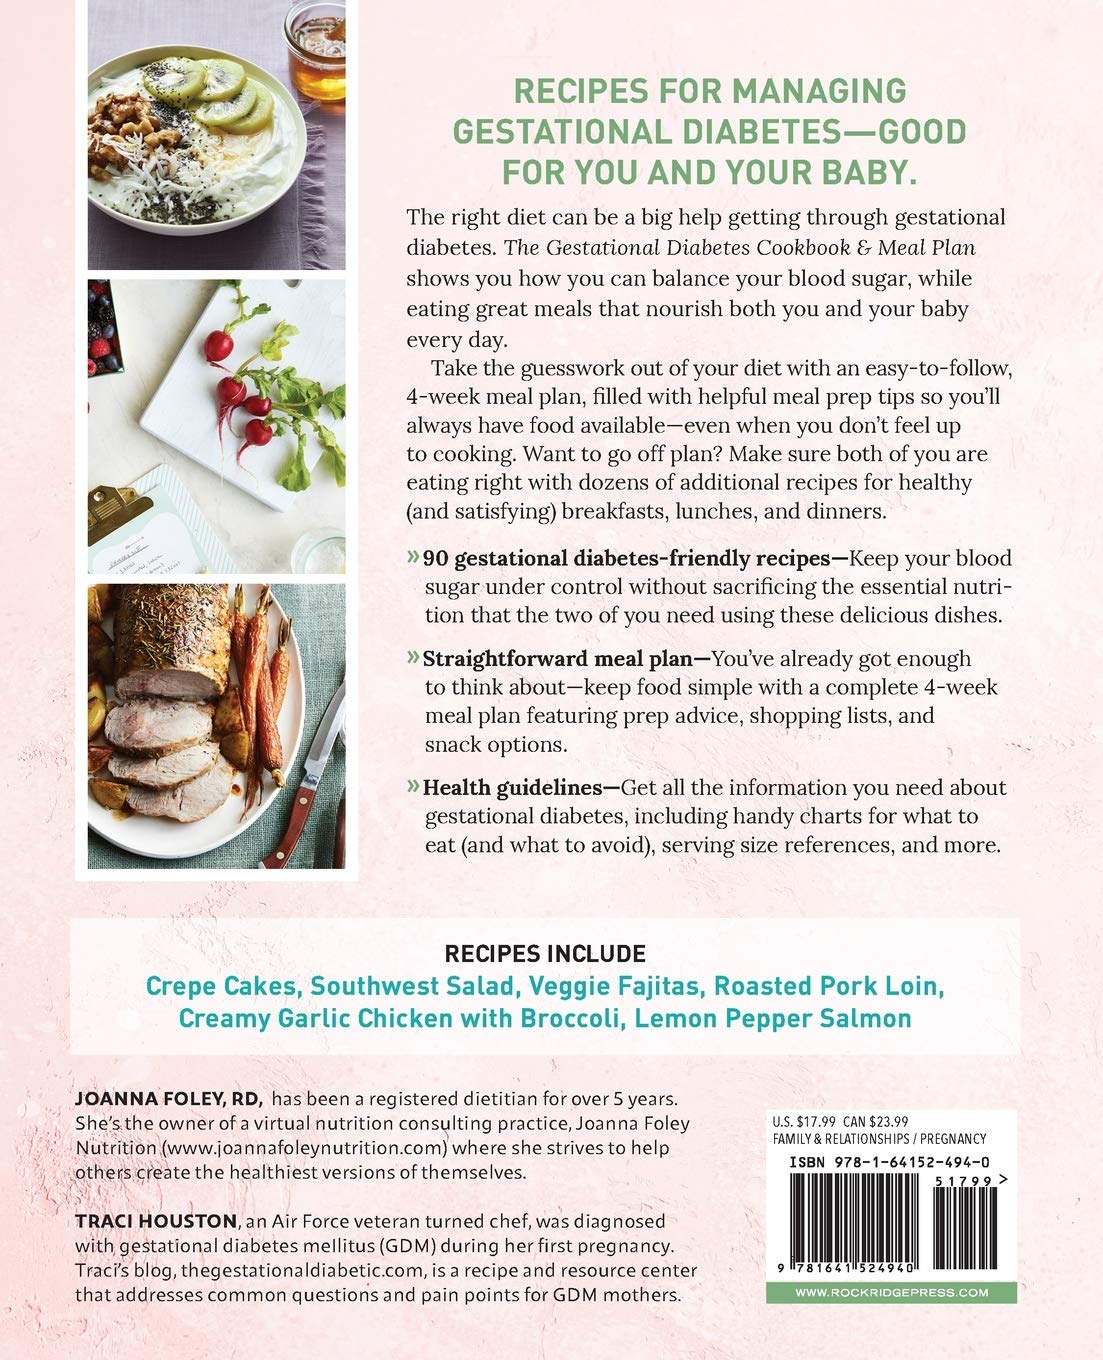 The Gestational Diabetes Cookbook Meal Plan A Balanced Eating